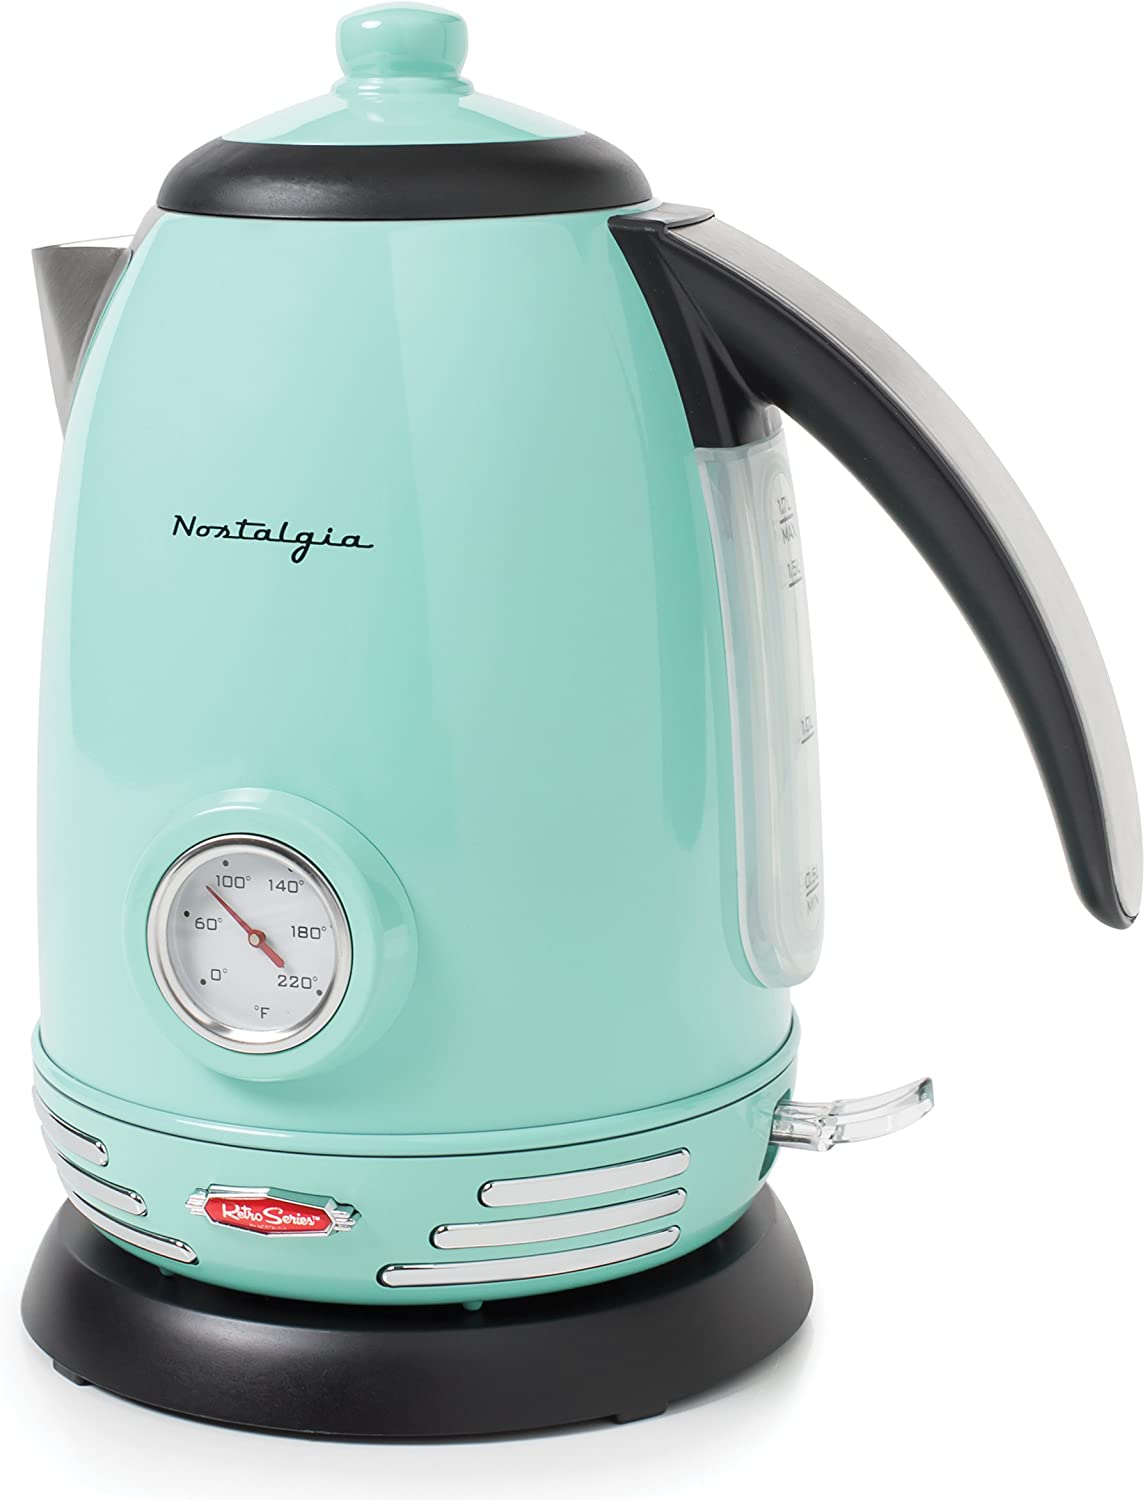 Nostalgia RWK150AQ Retro Stainless Steel Electric Water Kettle, Holds 1.7 Liters, Boil-Dry Protection, 360° Rotating Base, Water Level Indicator Window, Perfect For Tea, Hot Chocolate, Coffee, Aqua